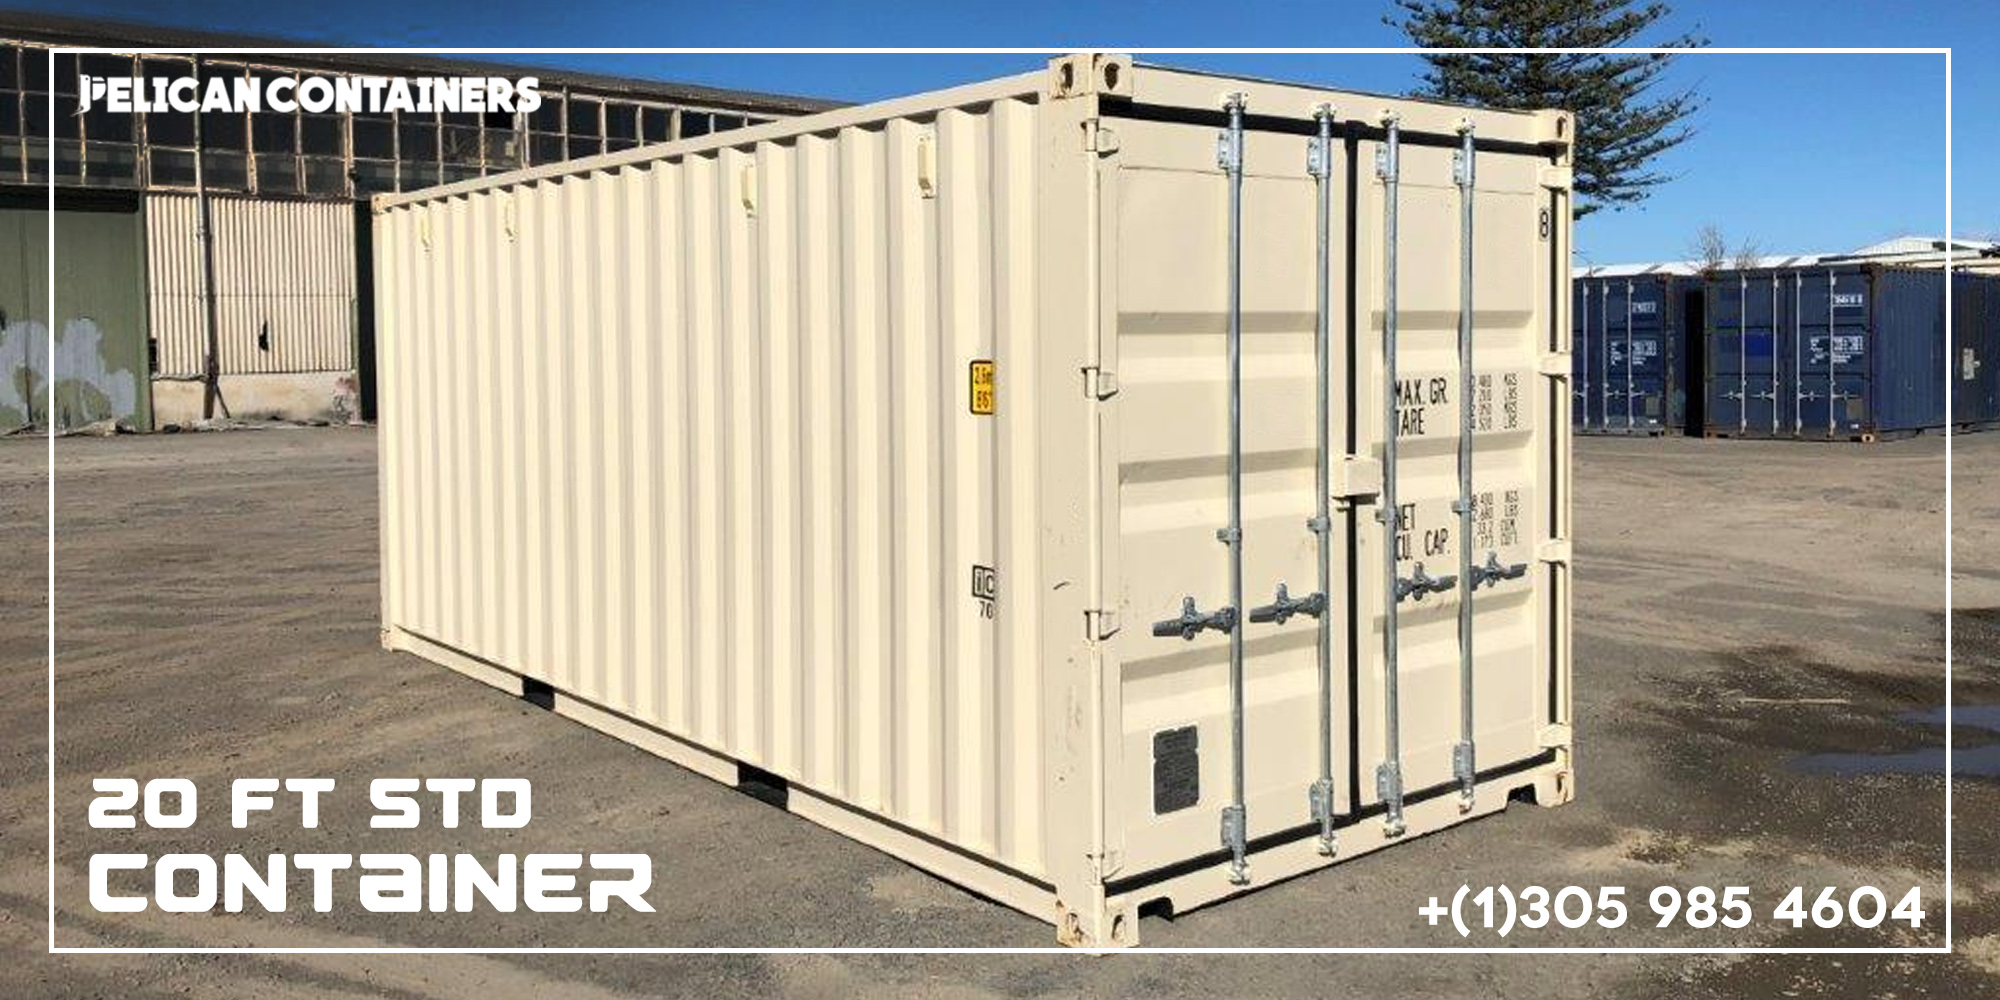 20' Std CW Shipping Container For Sale In Dallas - Pelican Containers